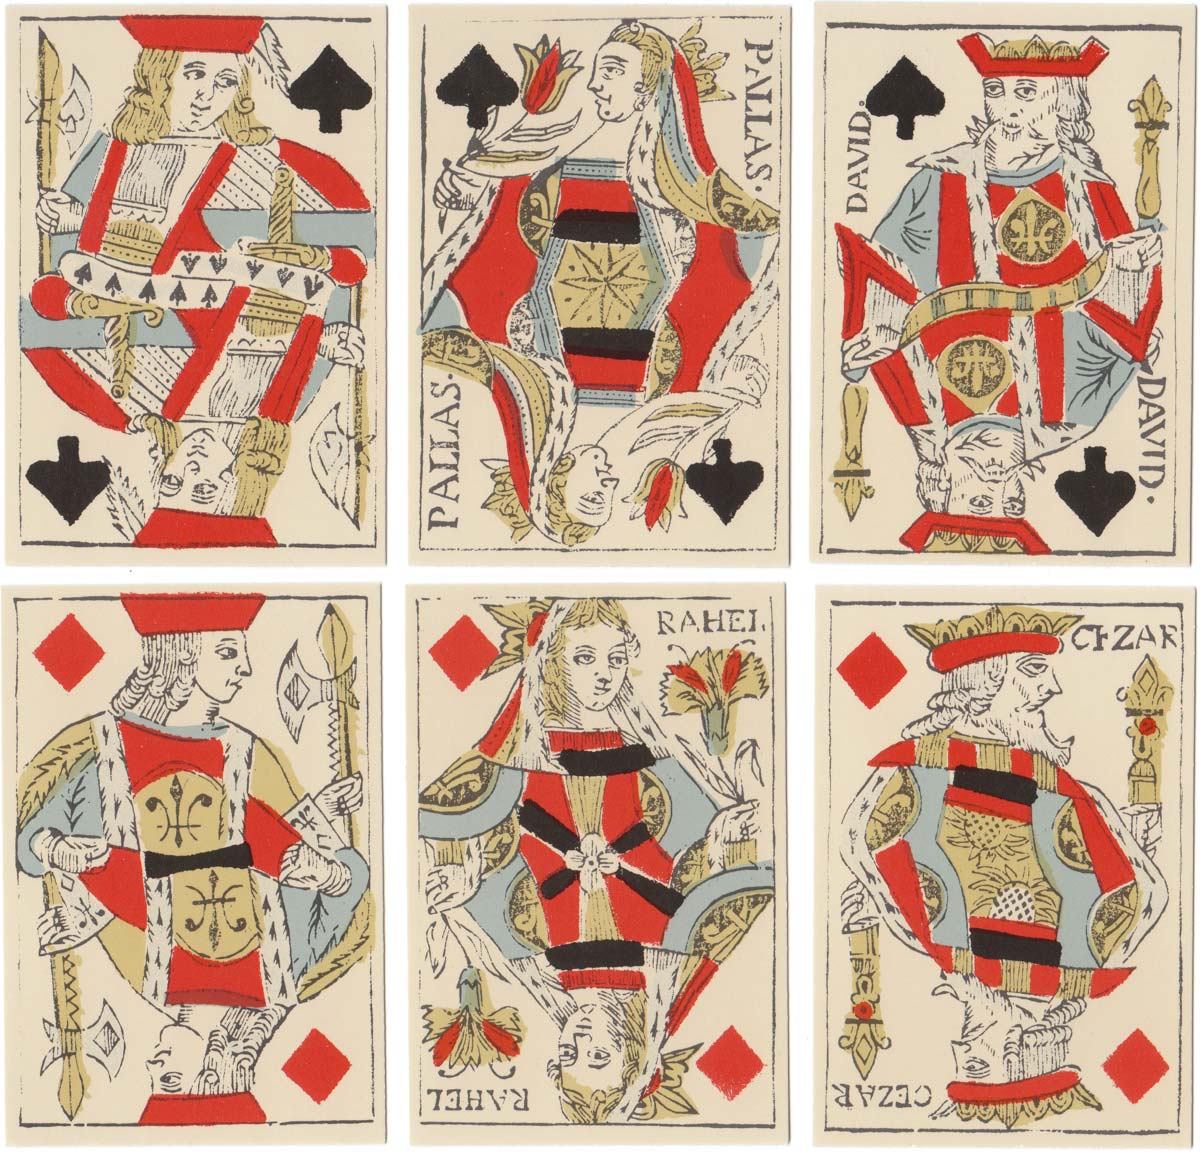 A facsimile of an early 19th century French-suited deck from the collection of F.X. Schmid